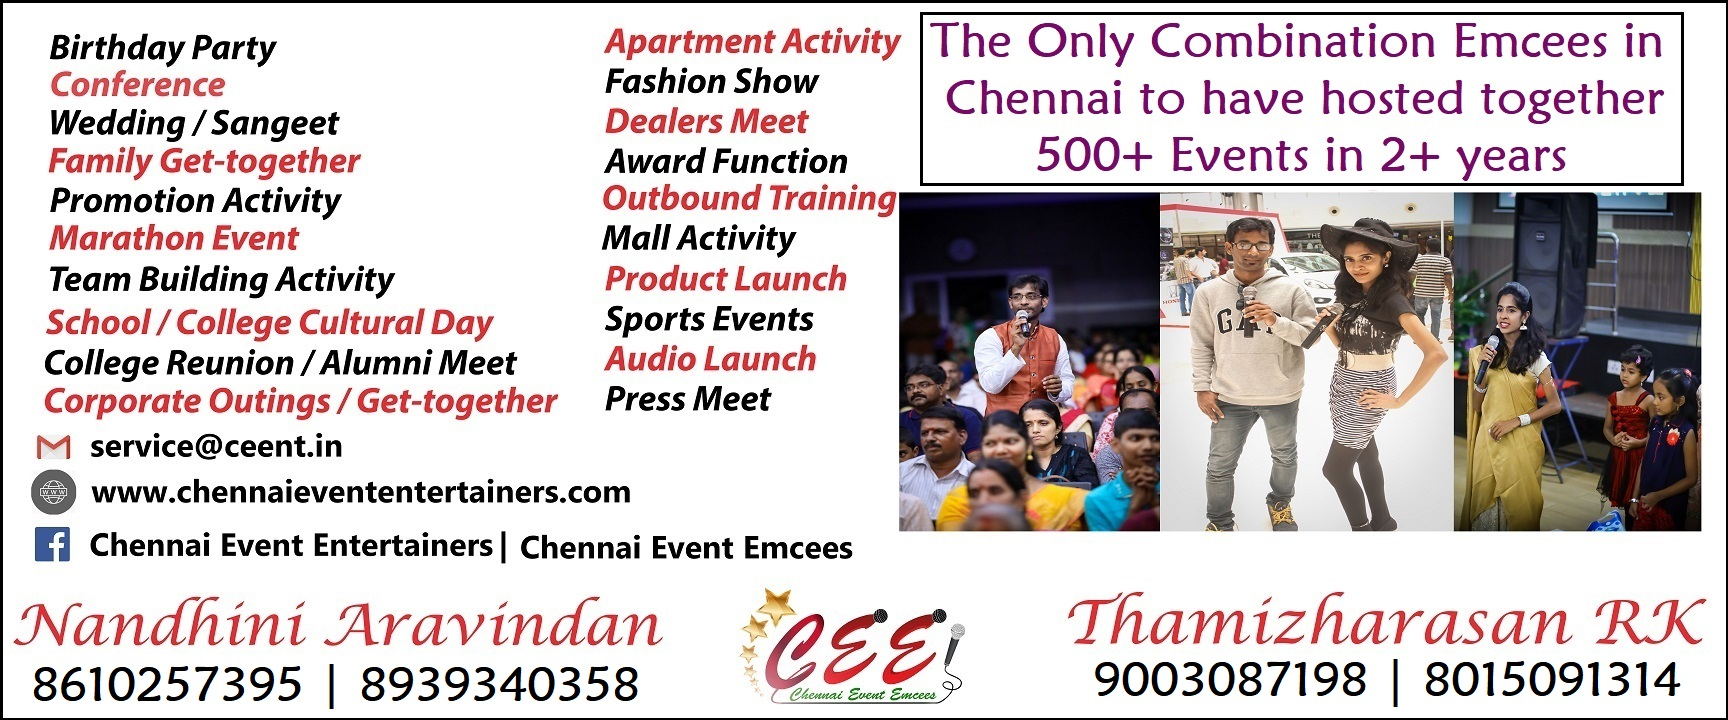 Chennai Event Professionals Emcees and Entertainers Nandhini Aravindan and Thamizharasan Karunakaran